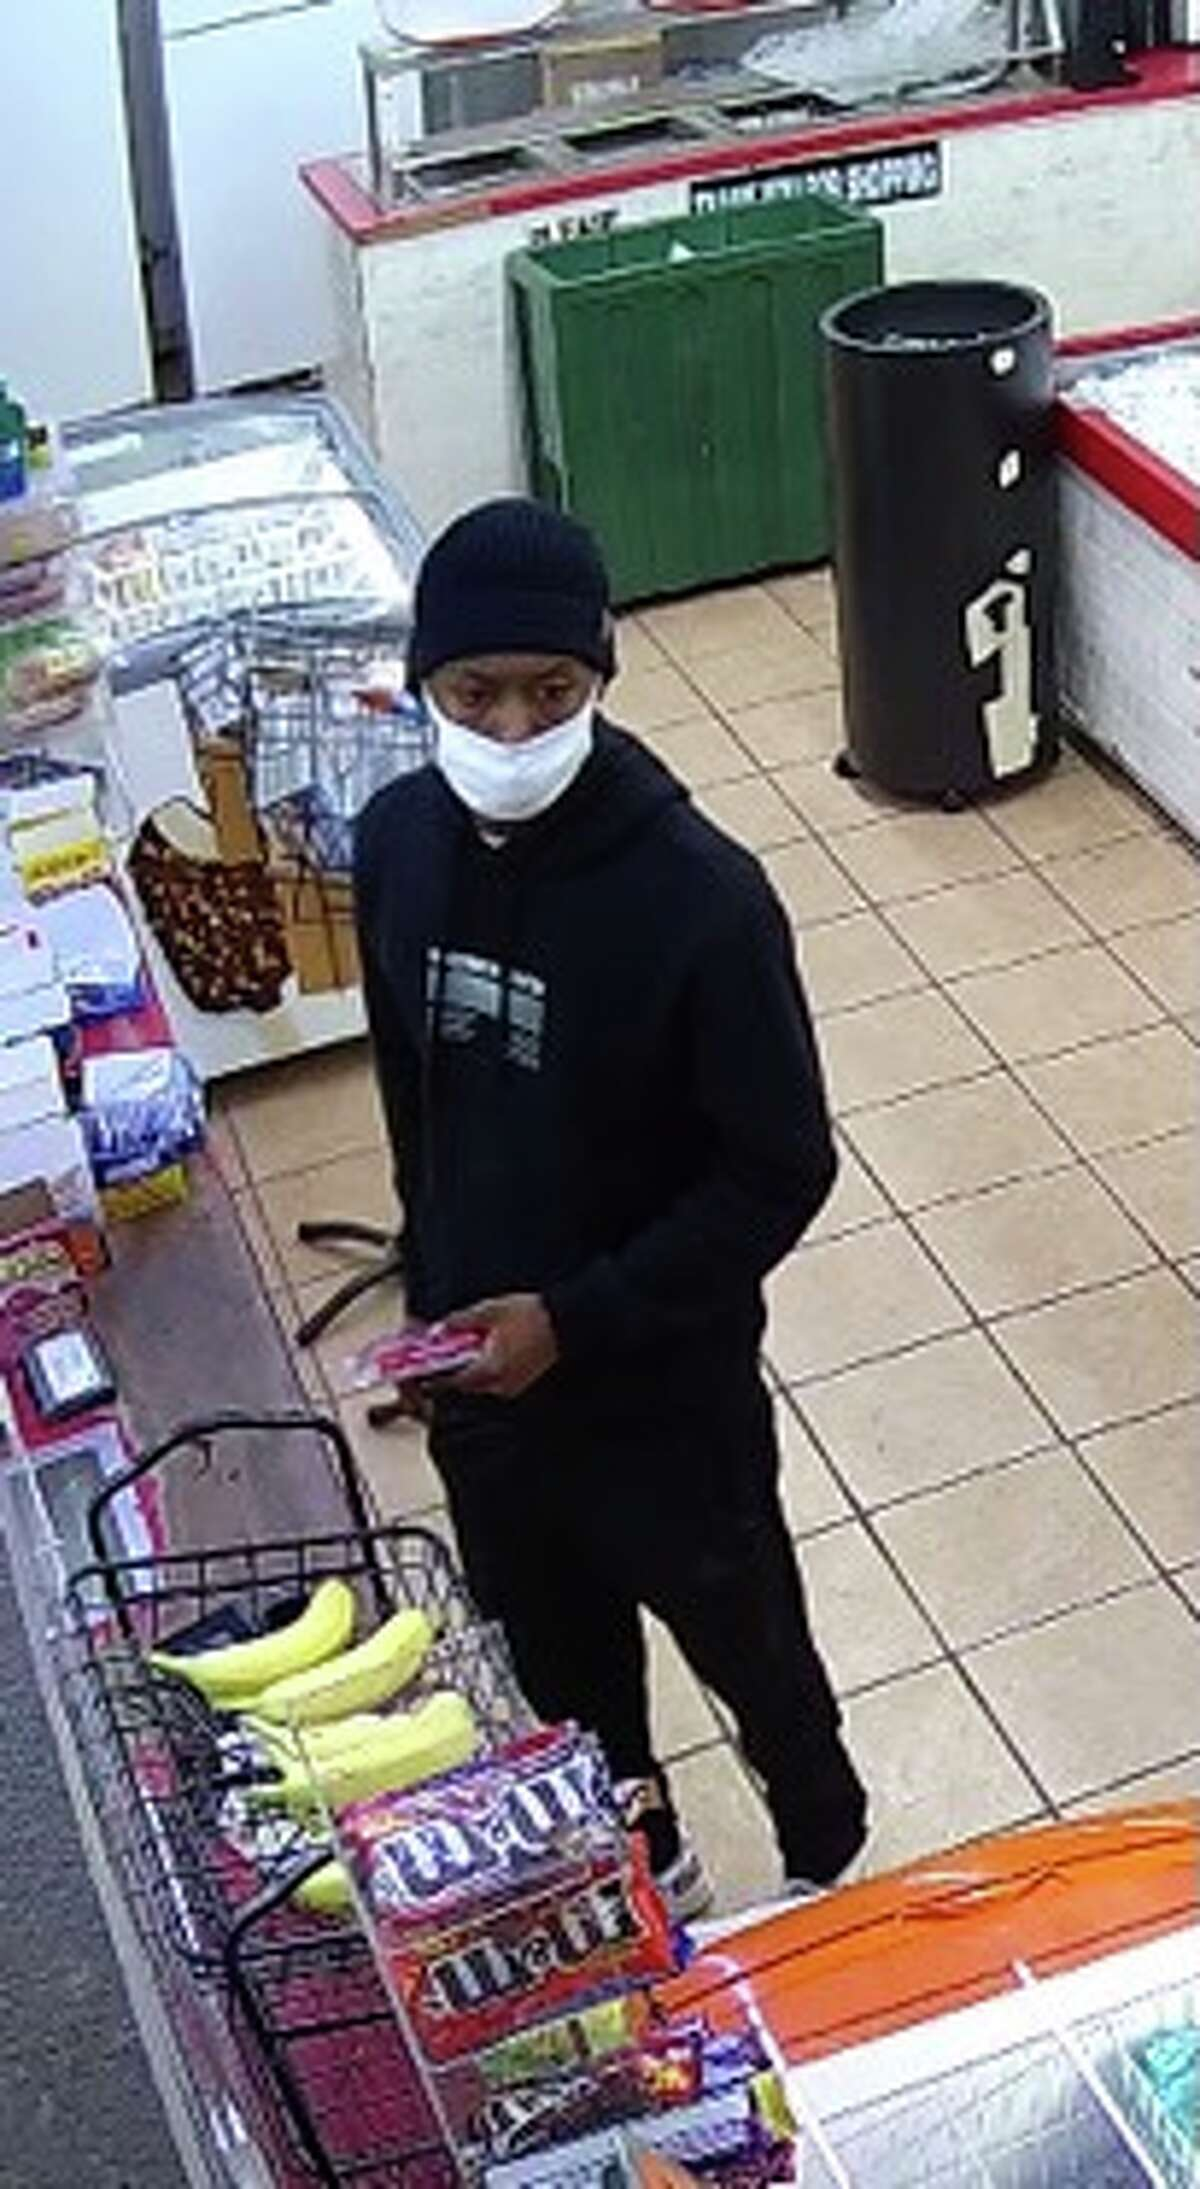 Beaumont police are asking or help identifying this person.